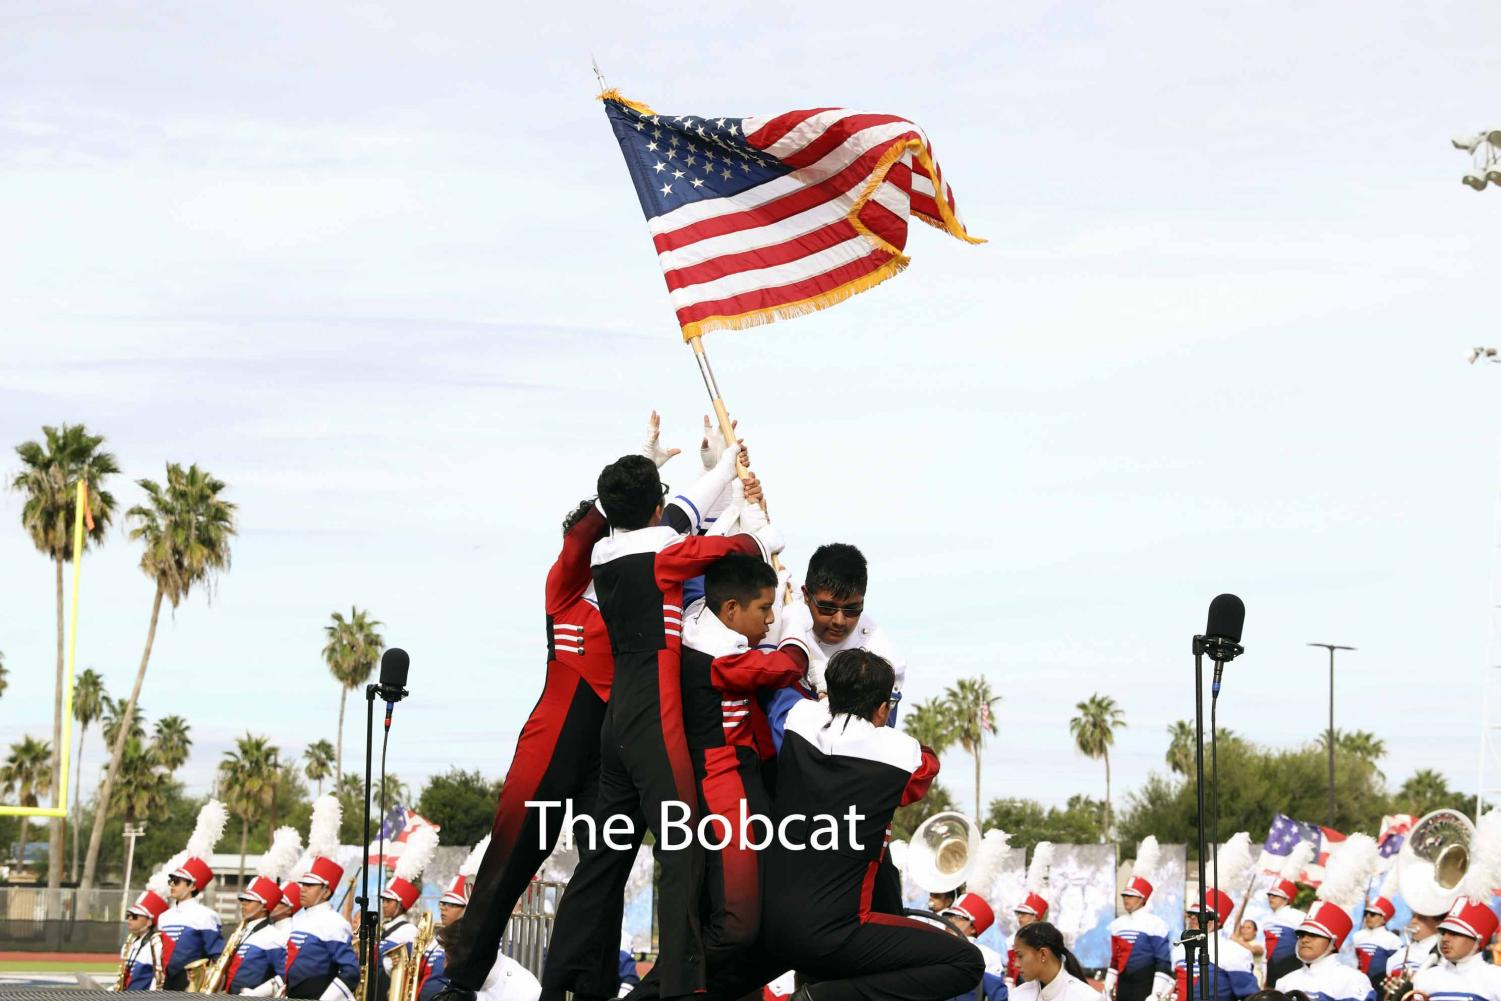 Band members 'Raise the Flag' during their Patriotic Showcase performance.